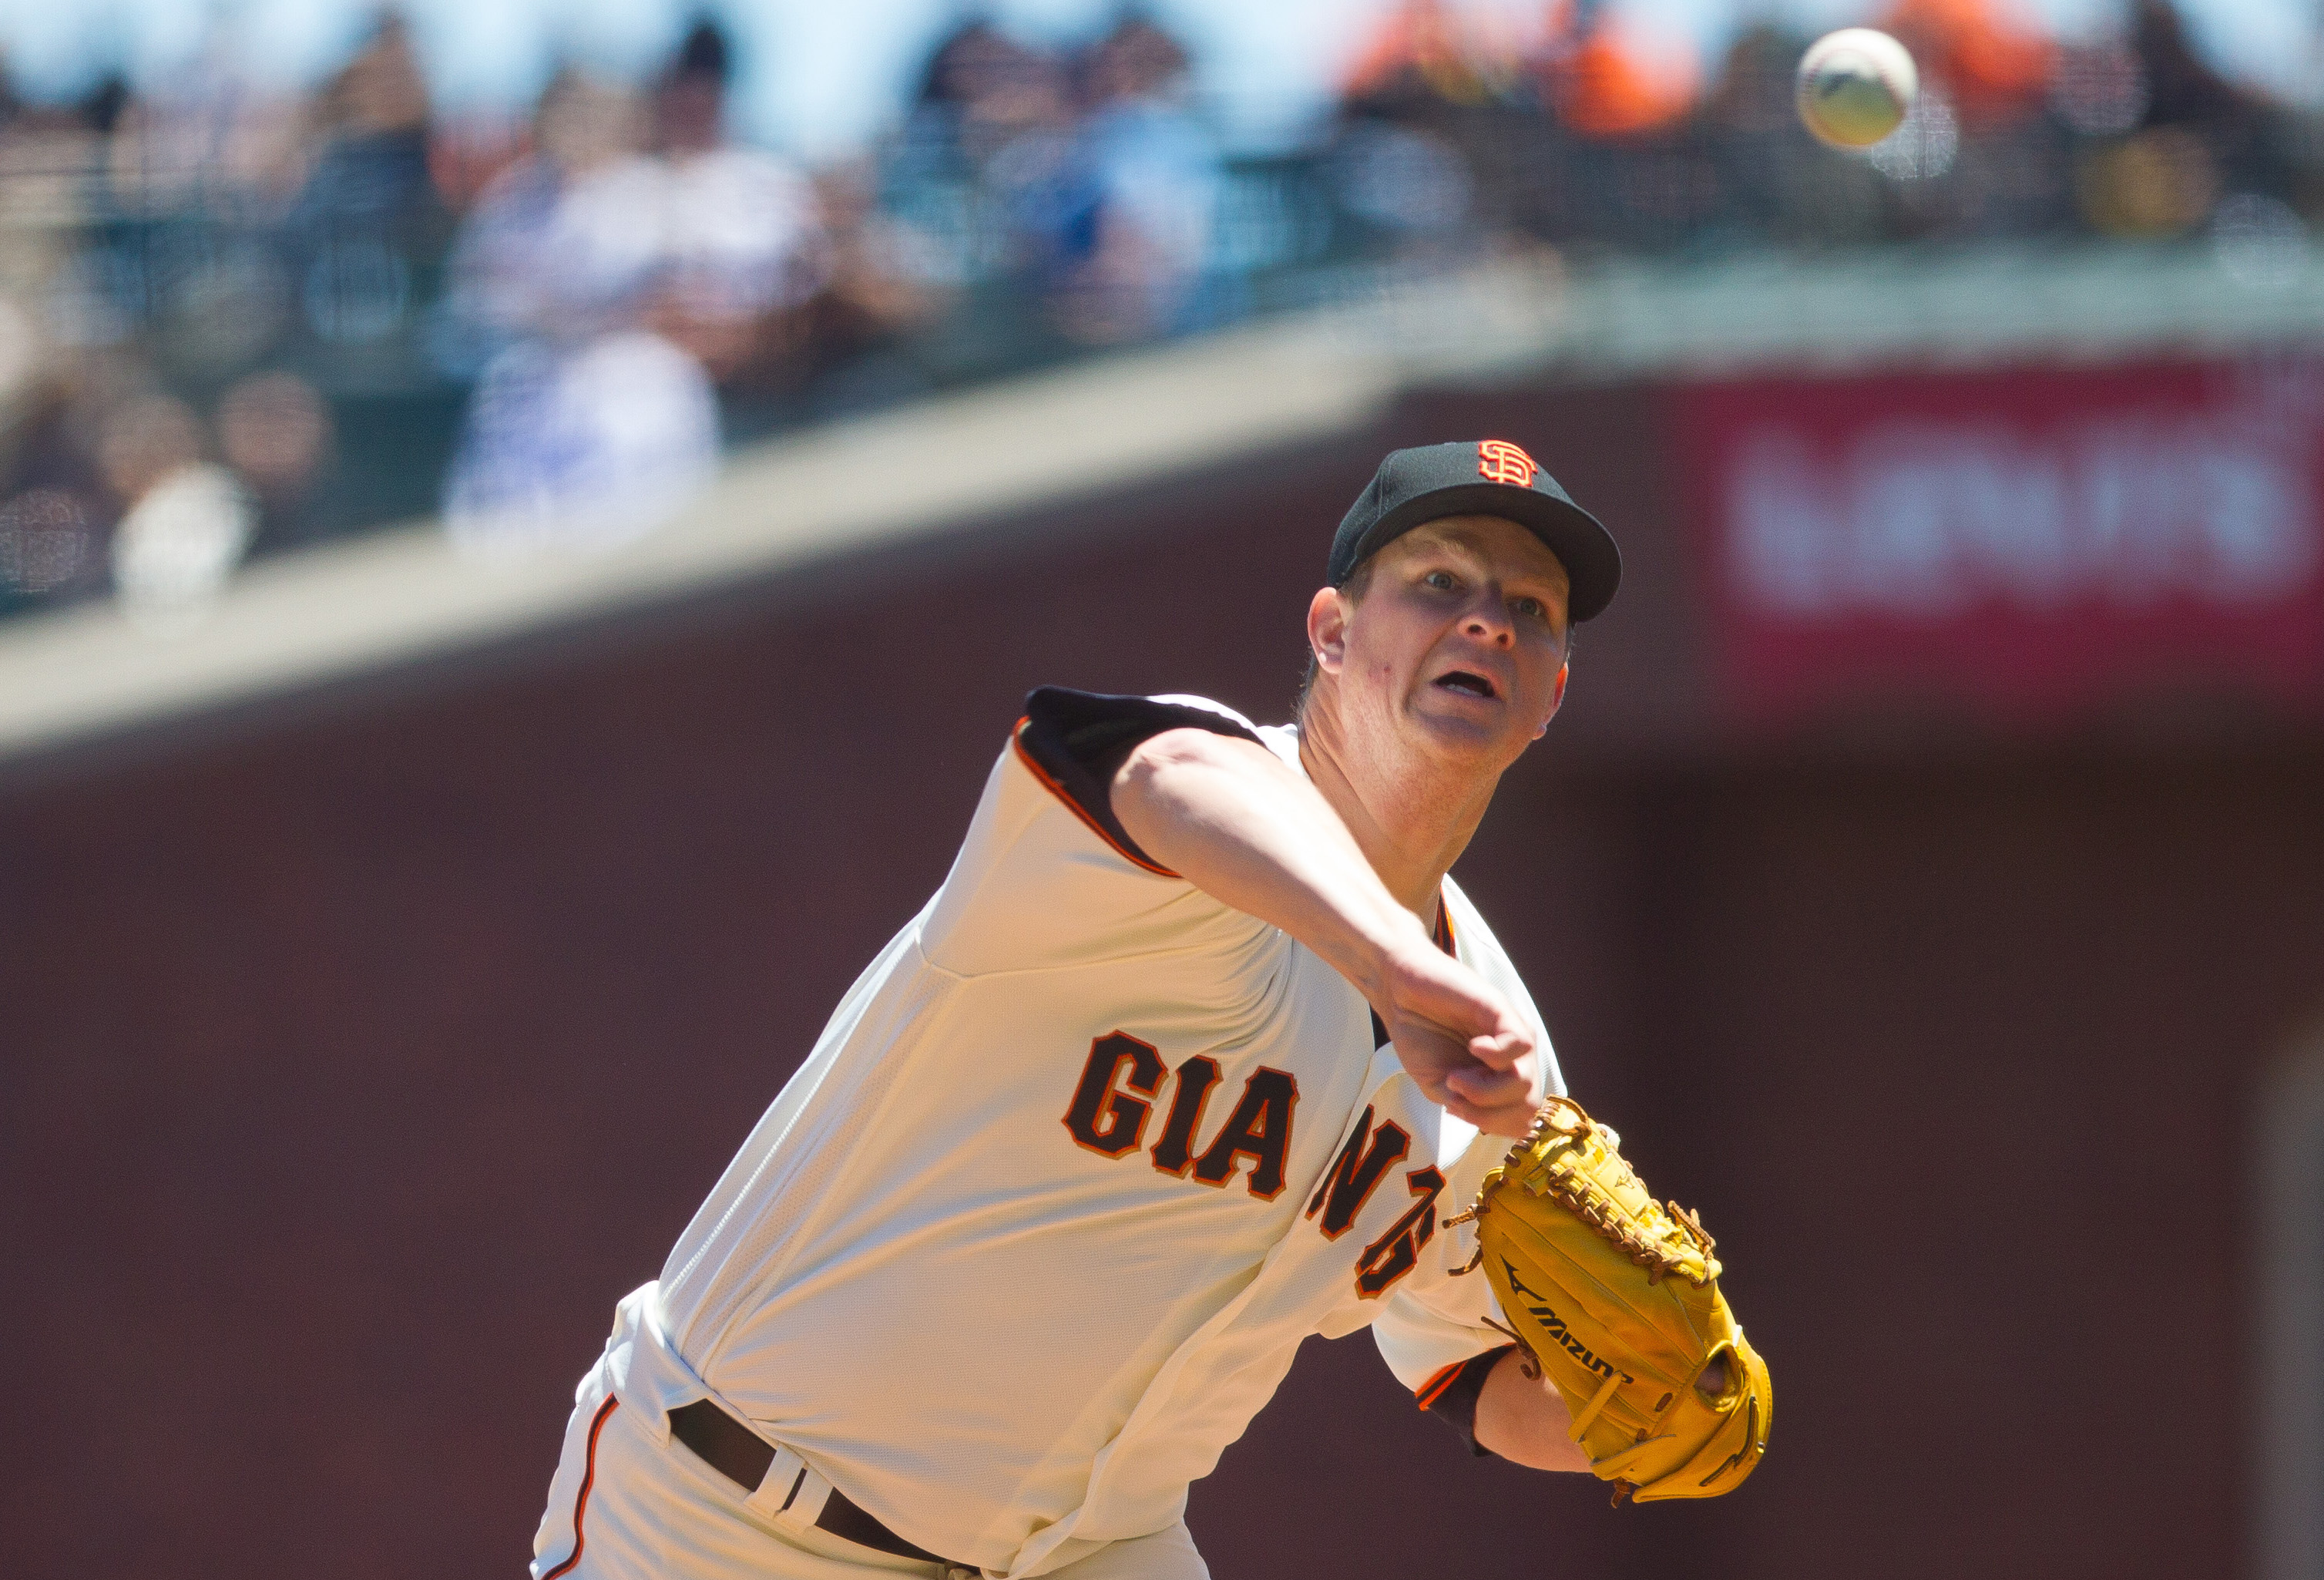 10103338-mlb-minnesota-twins-at-san-francisco-giants